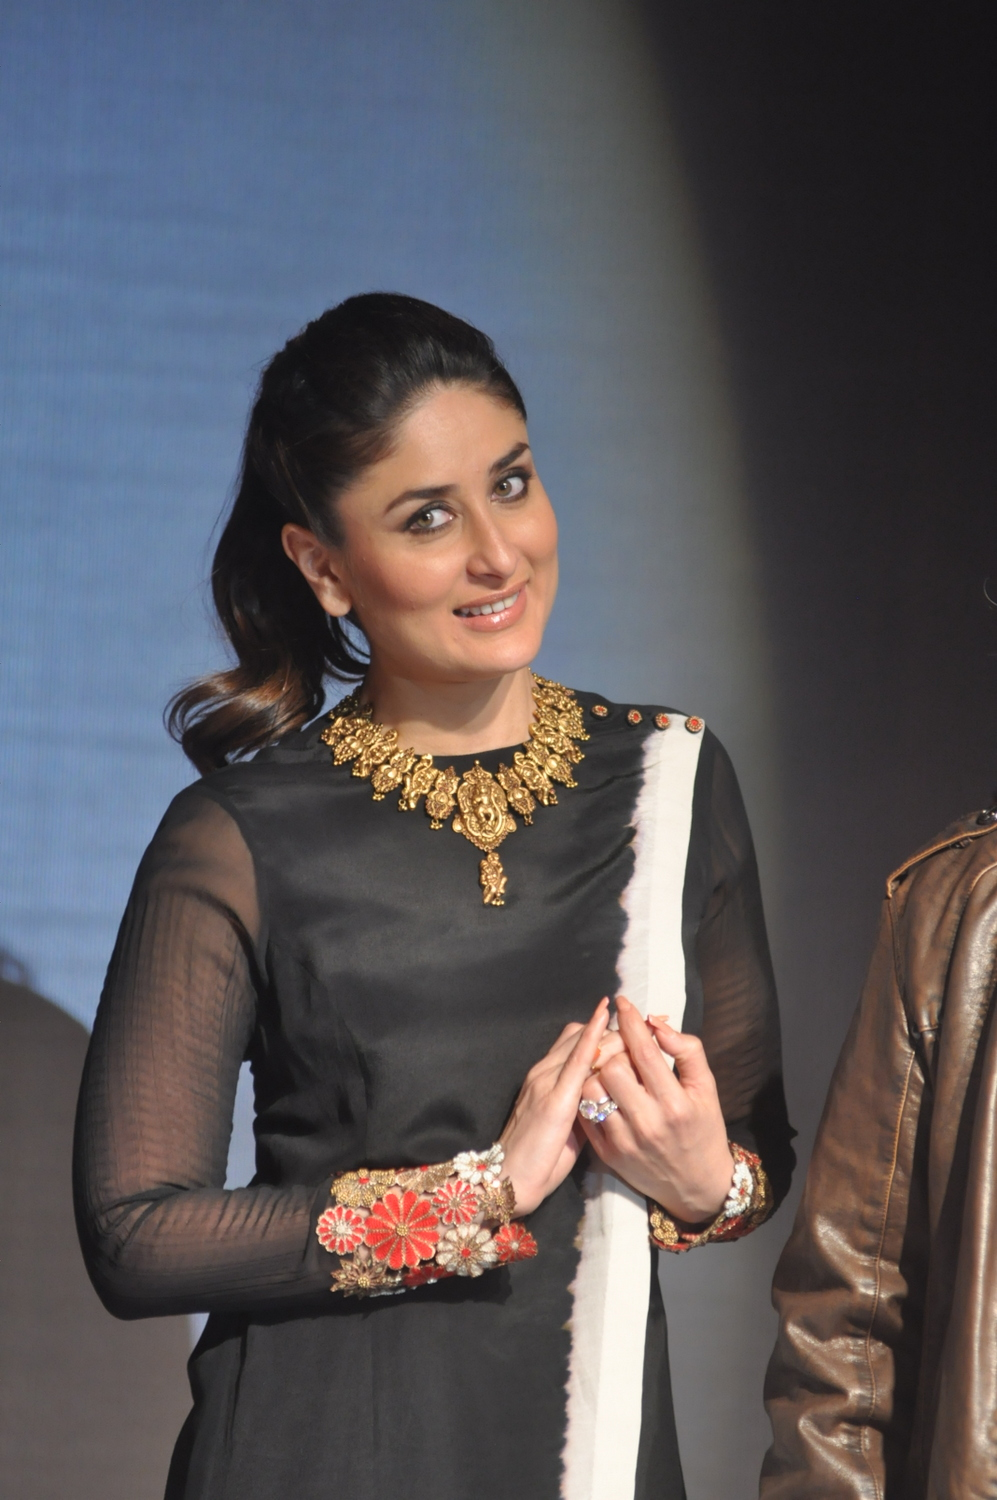 kareena kapoor in temple jewellery